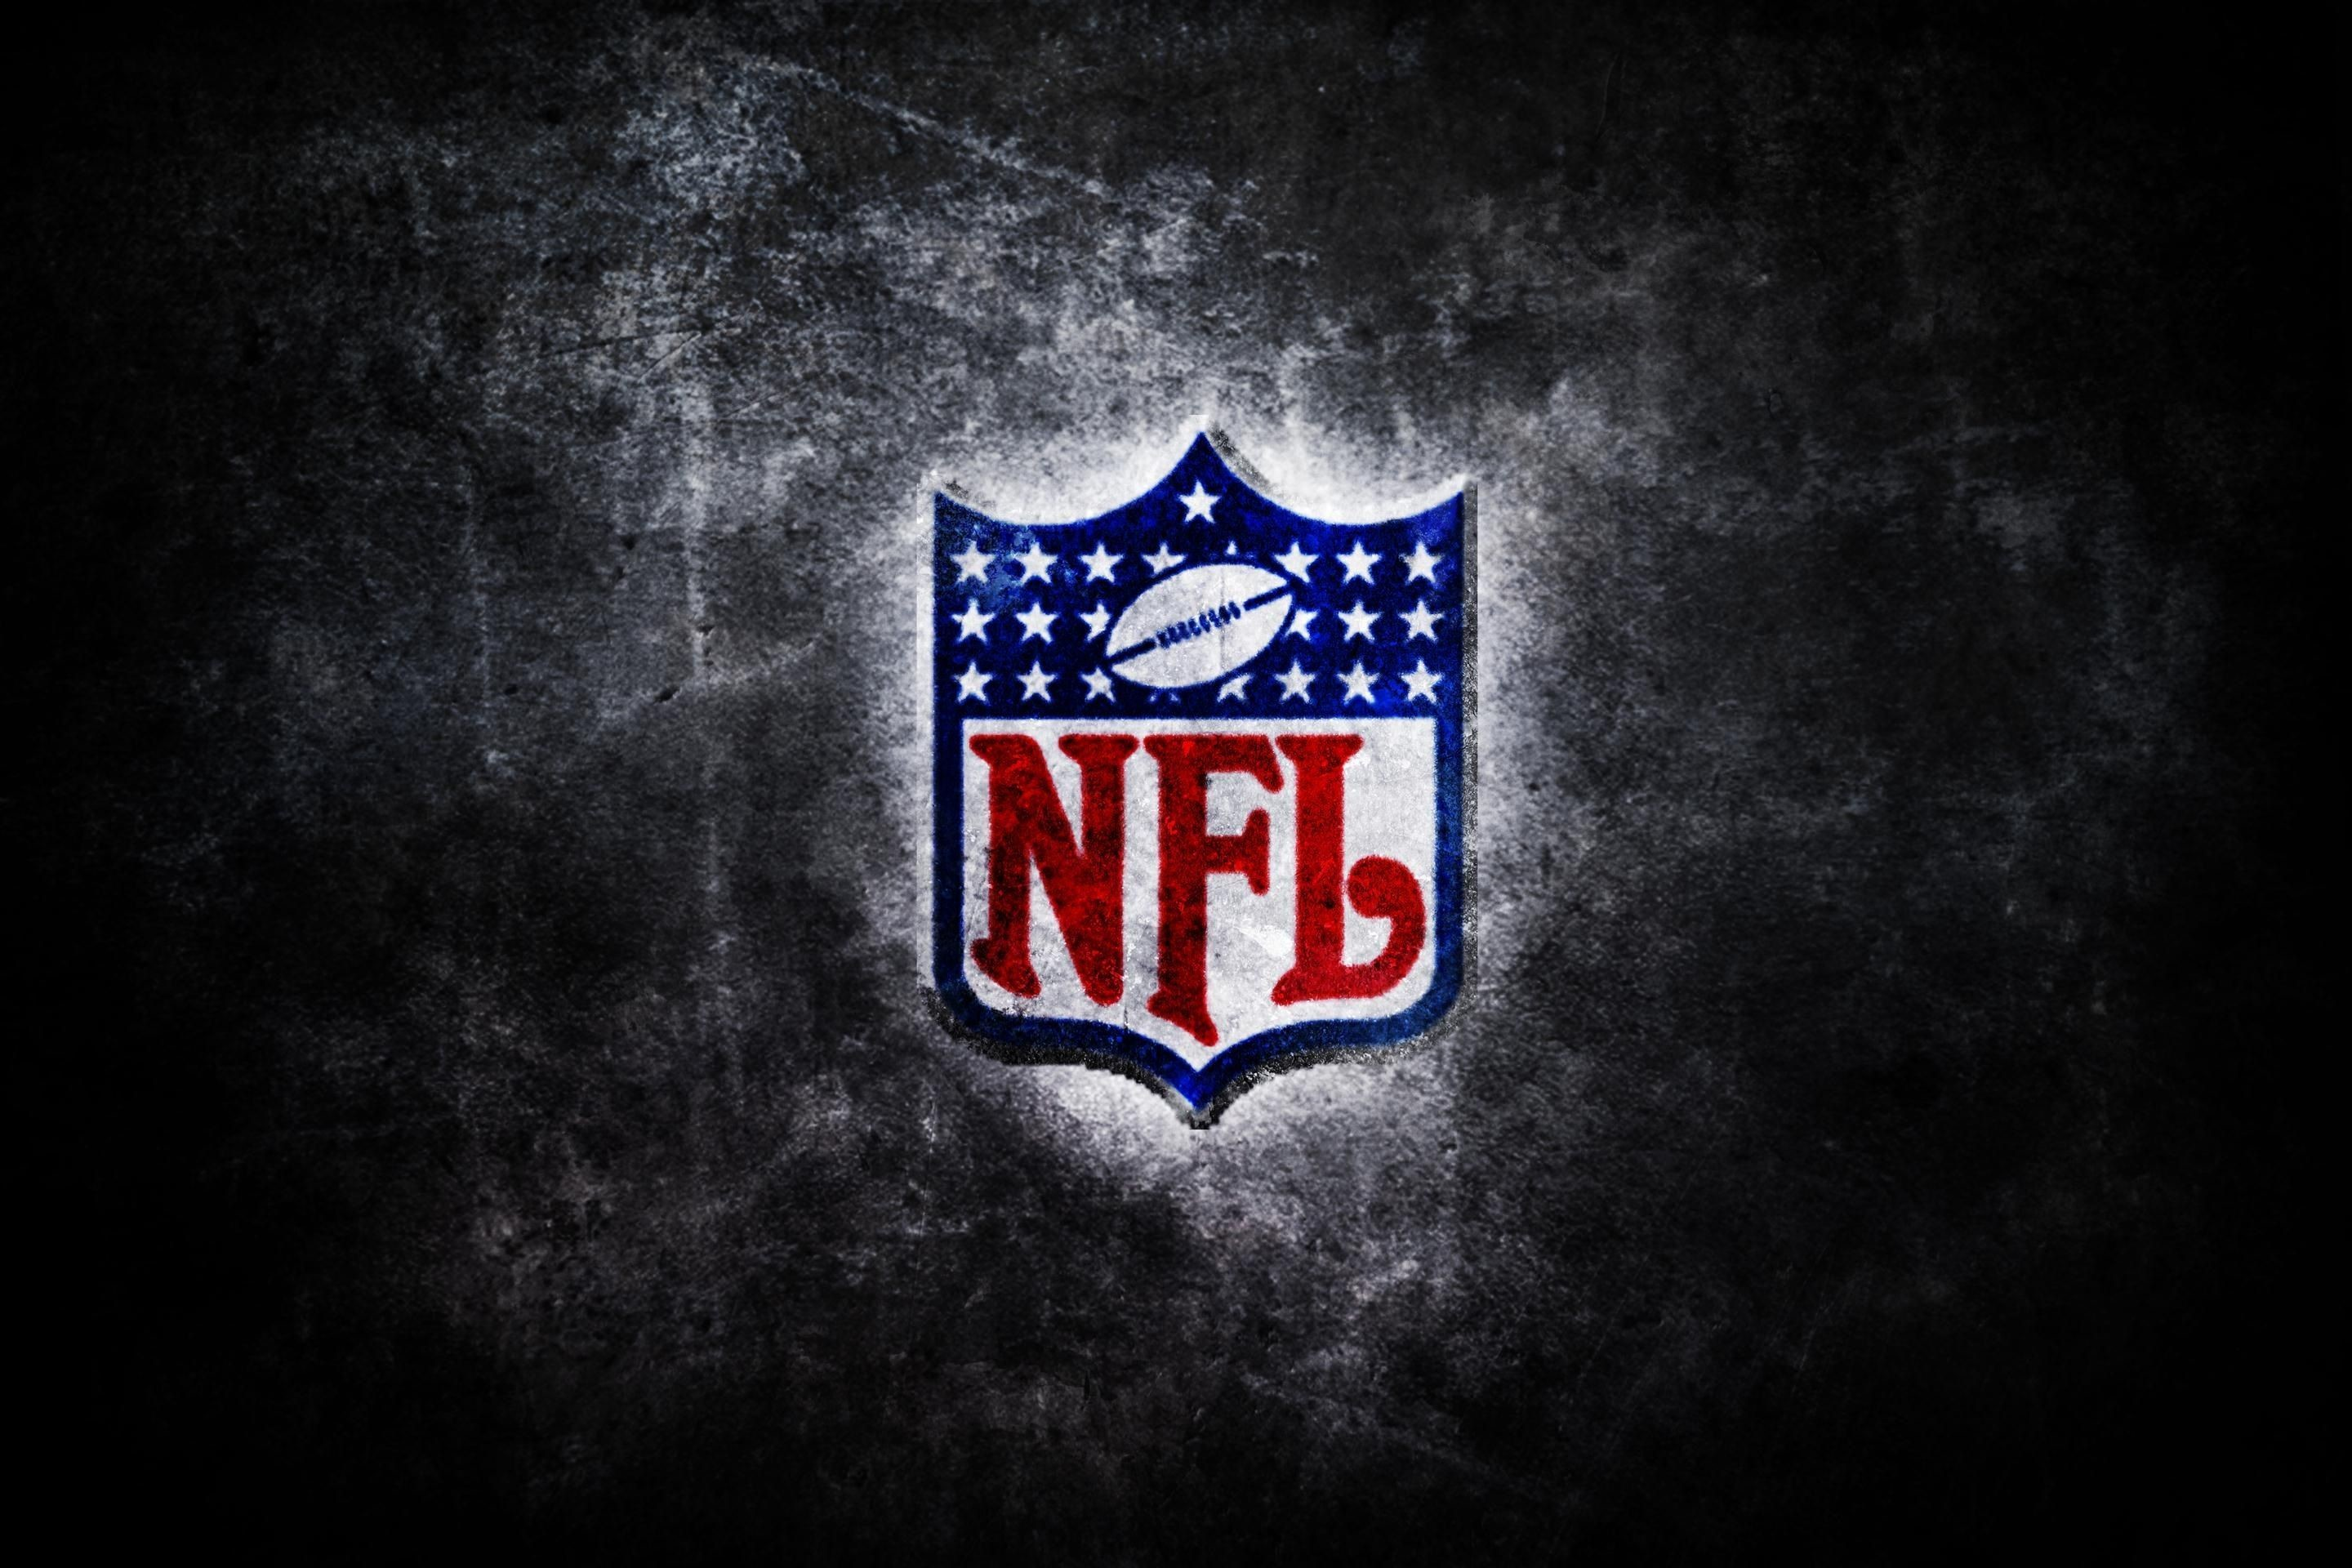 2880x1920 american football wallpapers for computer wallpaper desktop images  background photos download hd free windows wallpaper mac